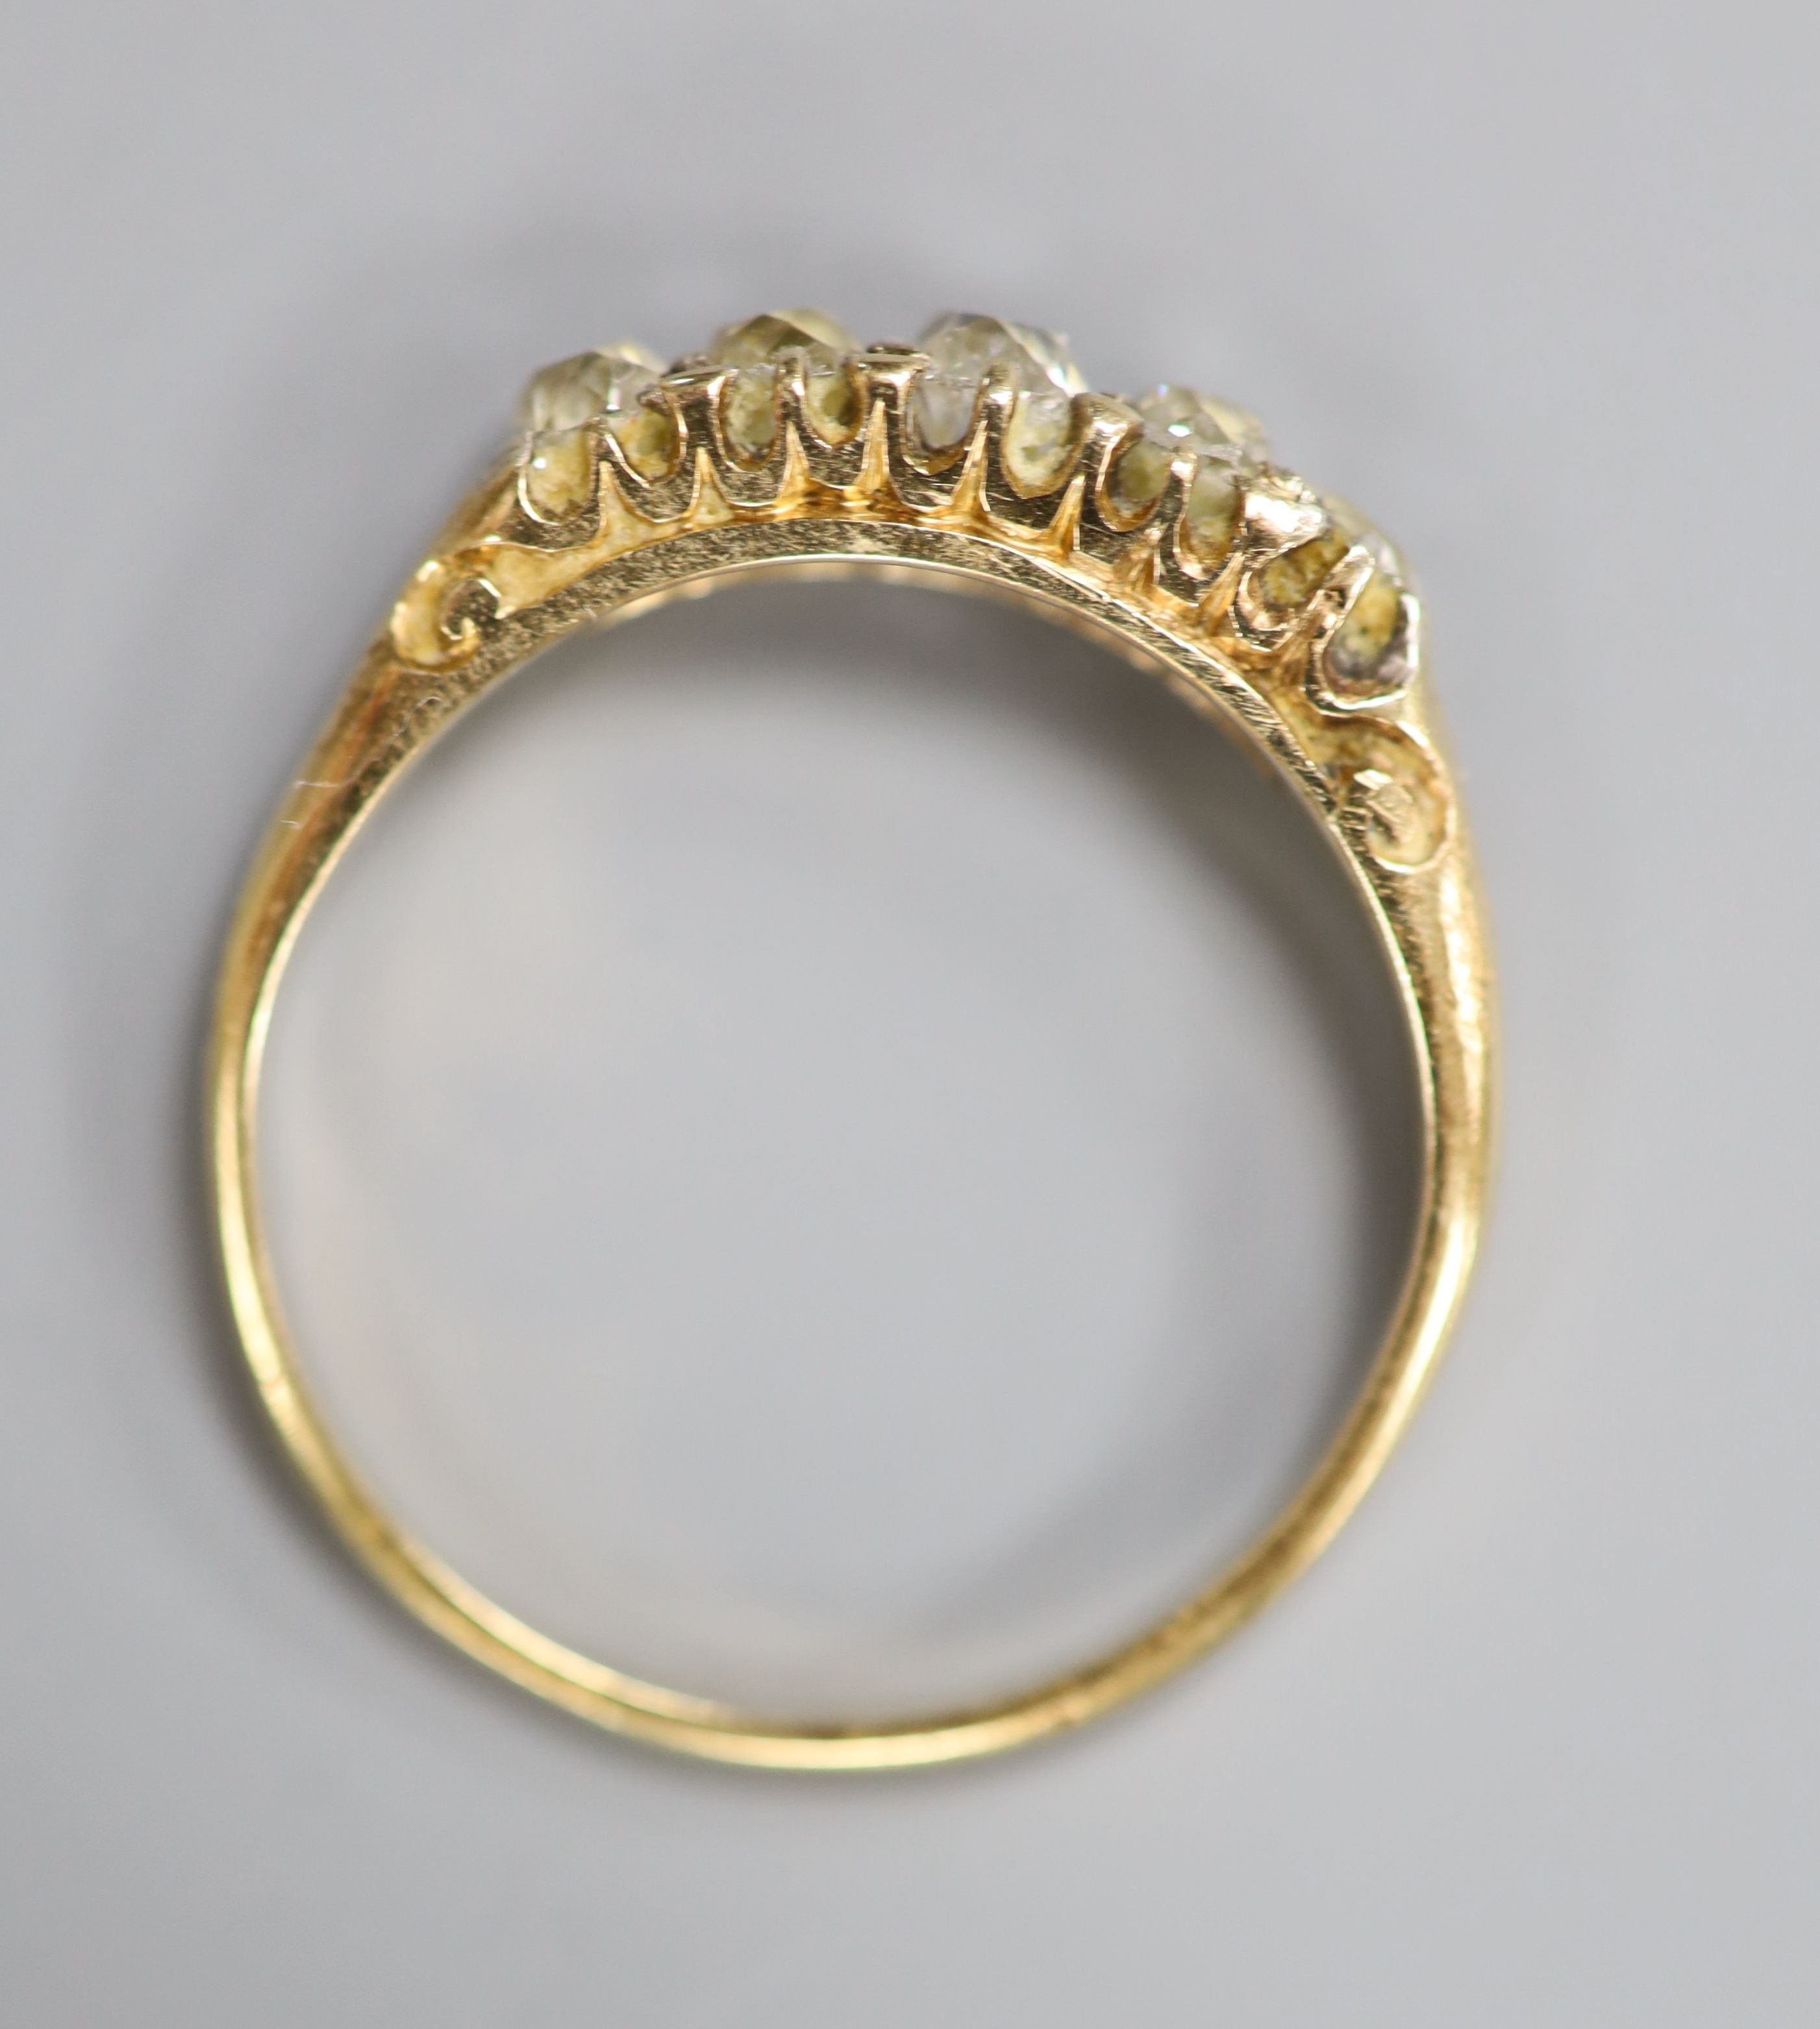 An early 20th century yellow metal and graduated five stone diamond set ring, size O, gross 2.6 - Image 3 of 3